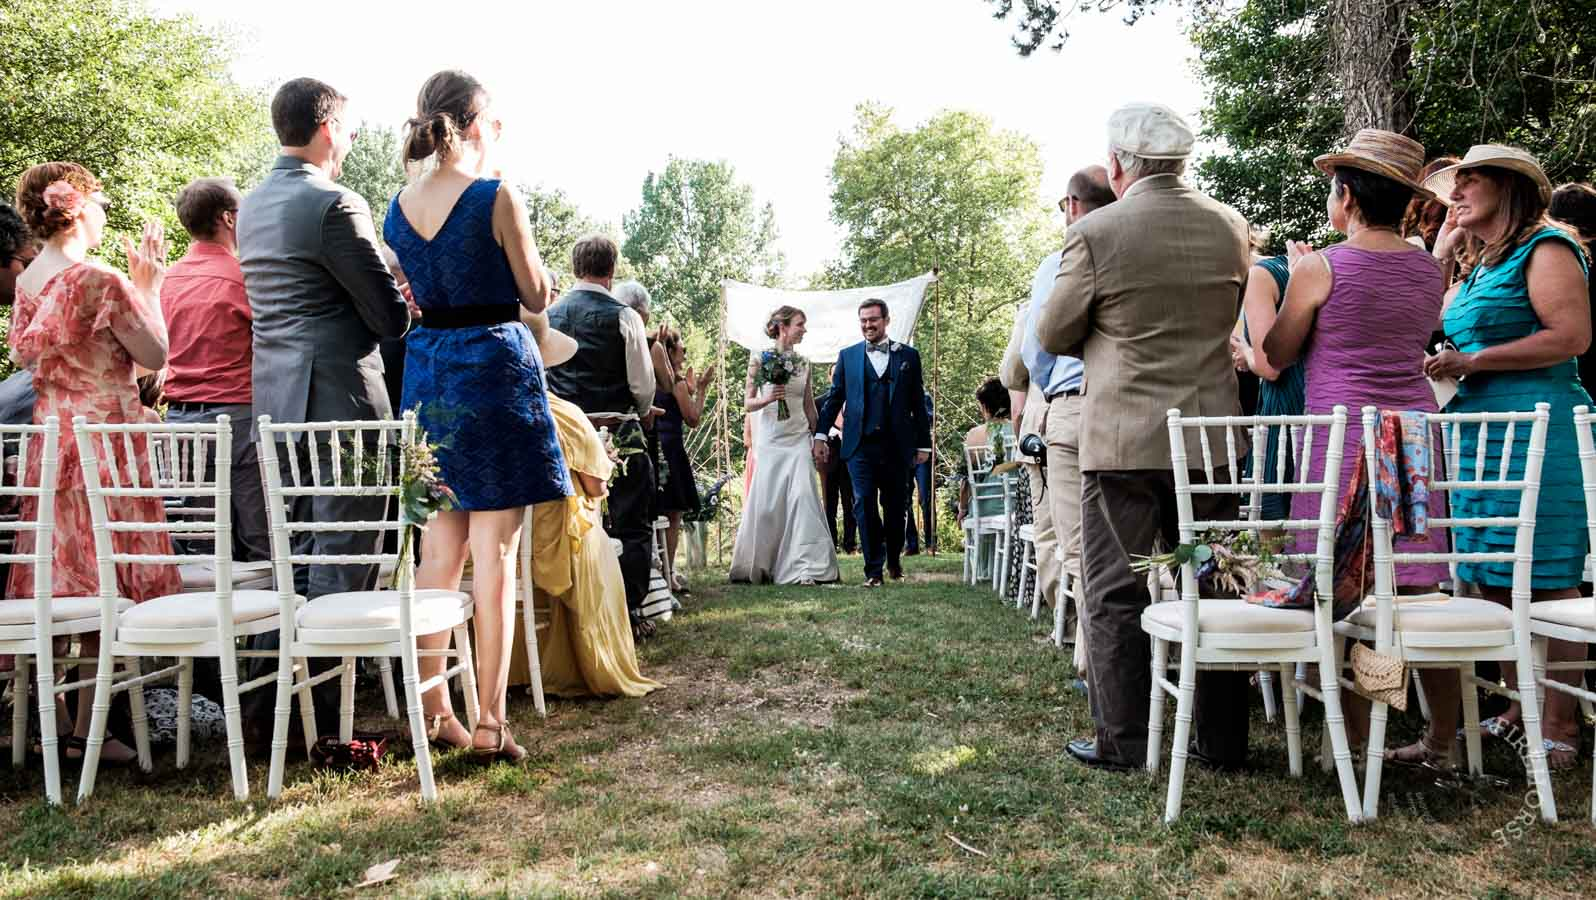 Lot-et-Garonne-Wedding-Photography-234